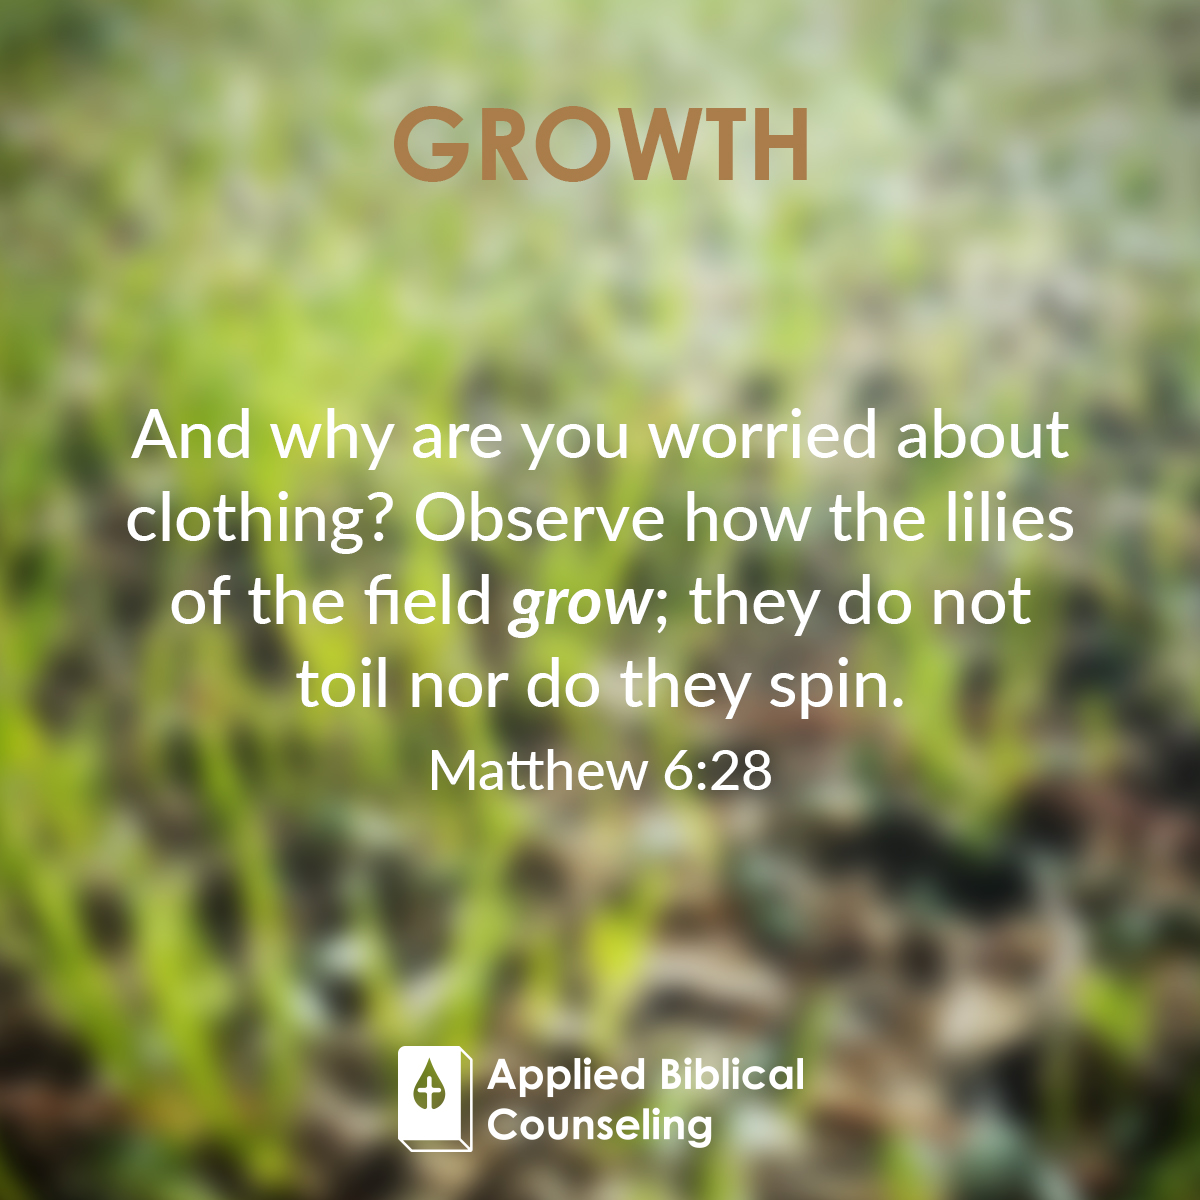 applied biblical counseling facebook w15 growth 5